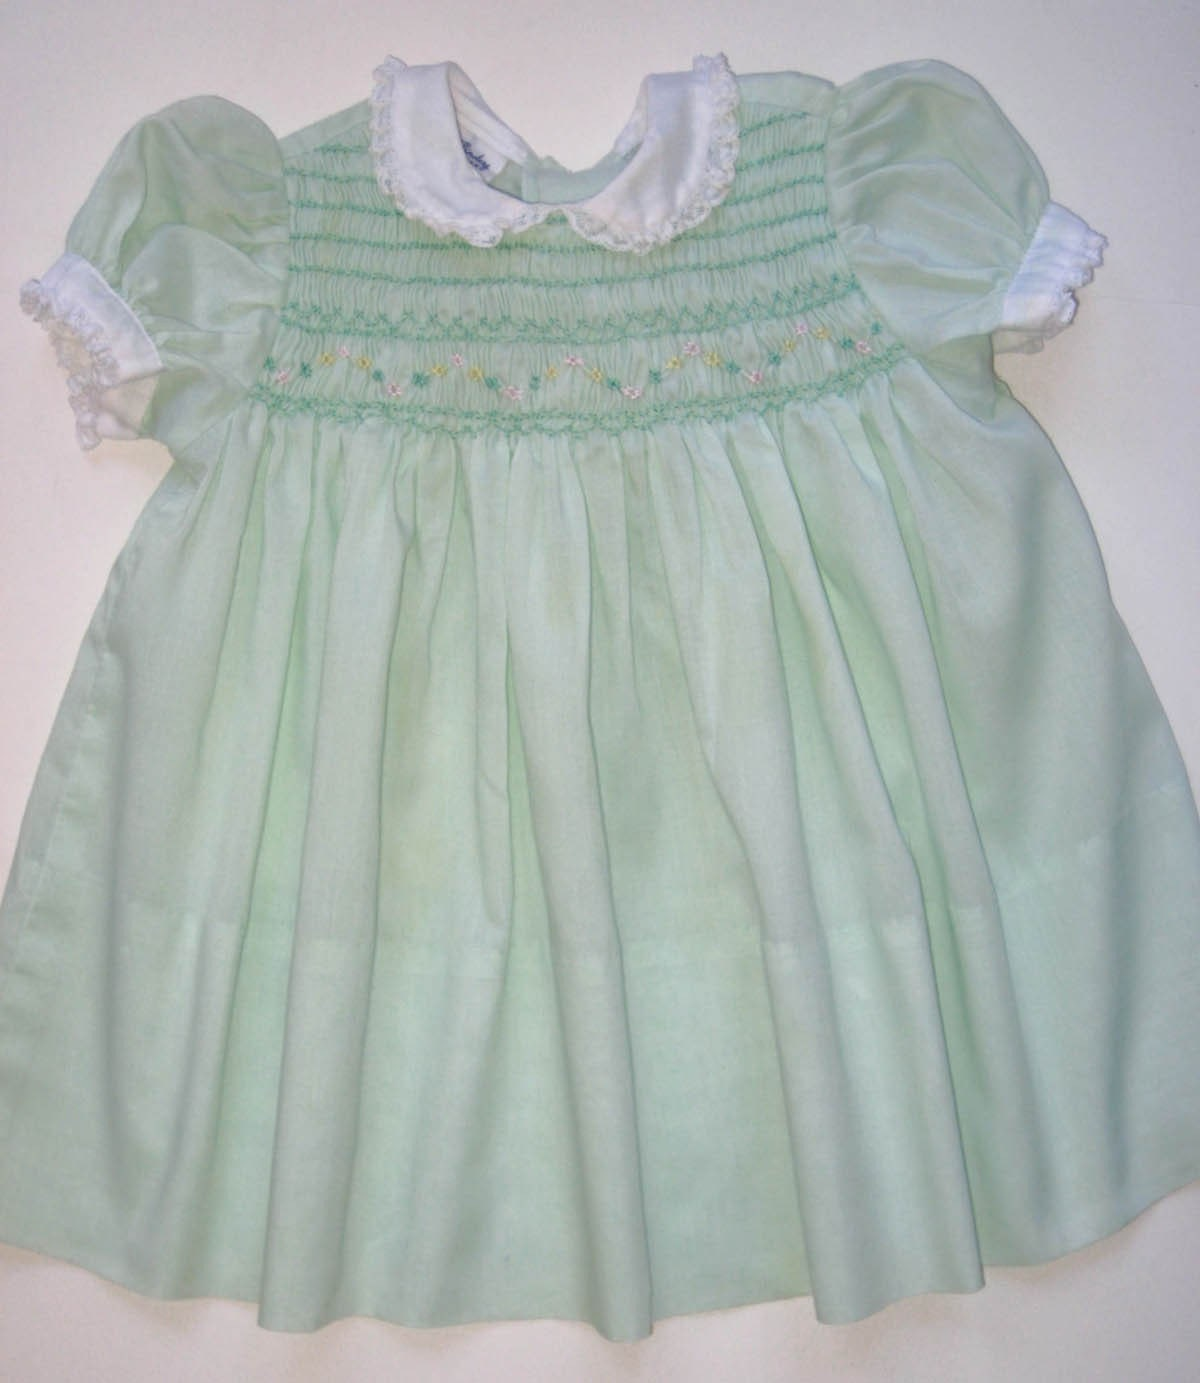 Vintage Polly Flinders Hand Smocked Baby Dress 18 By